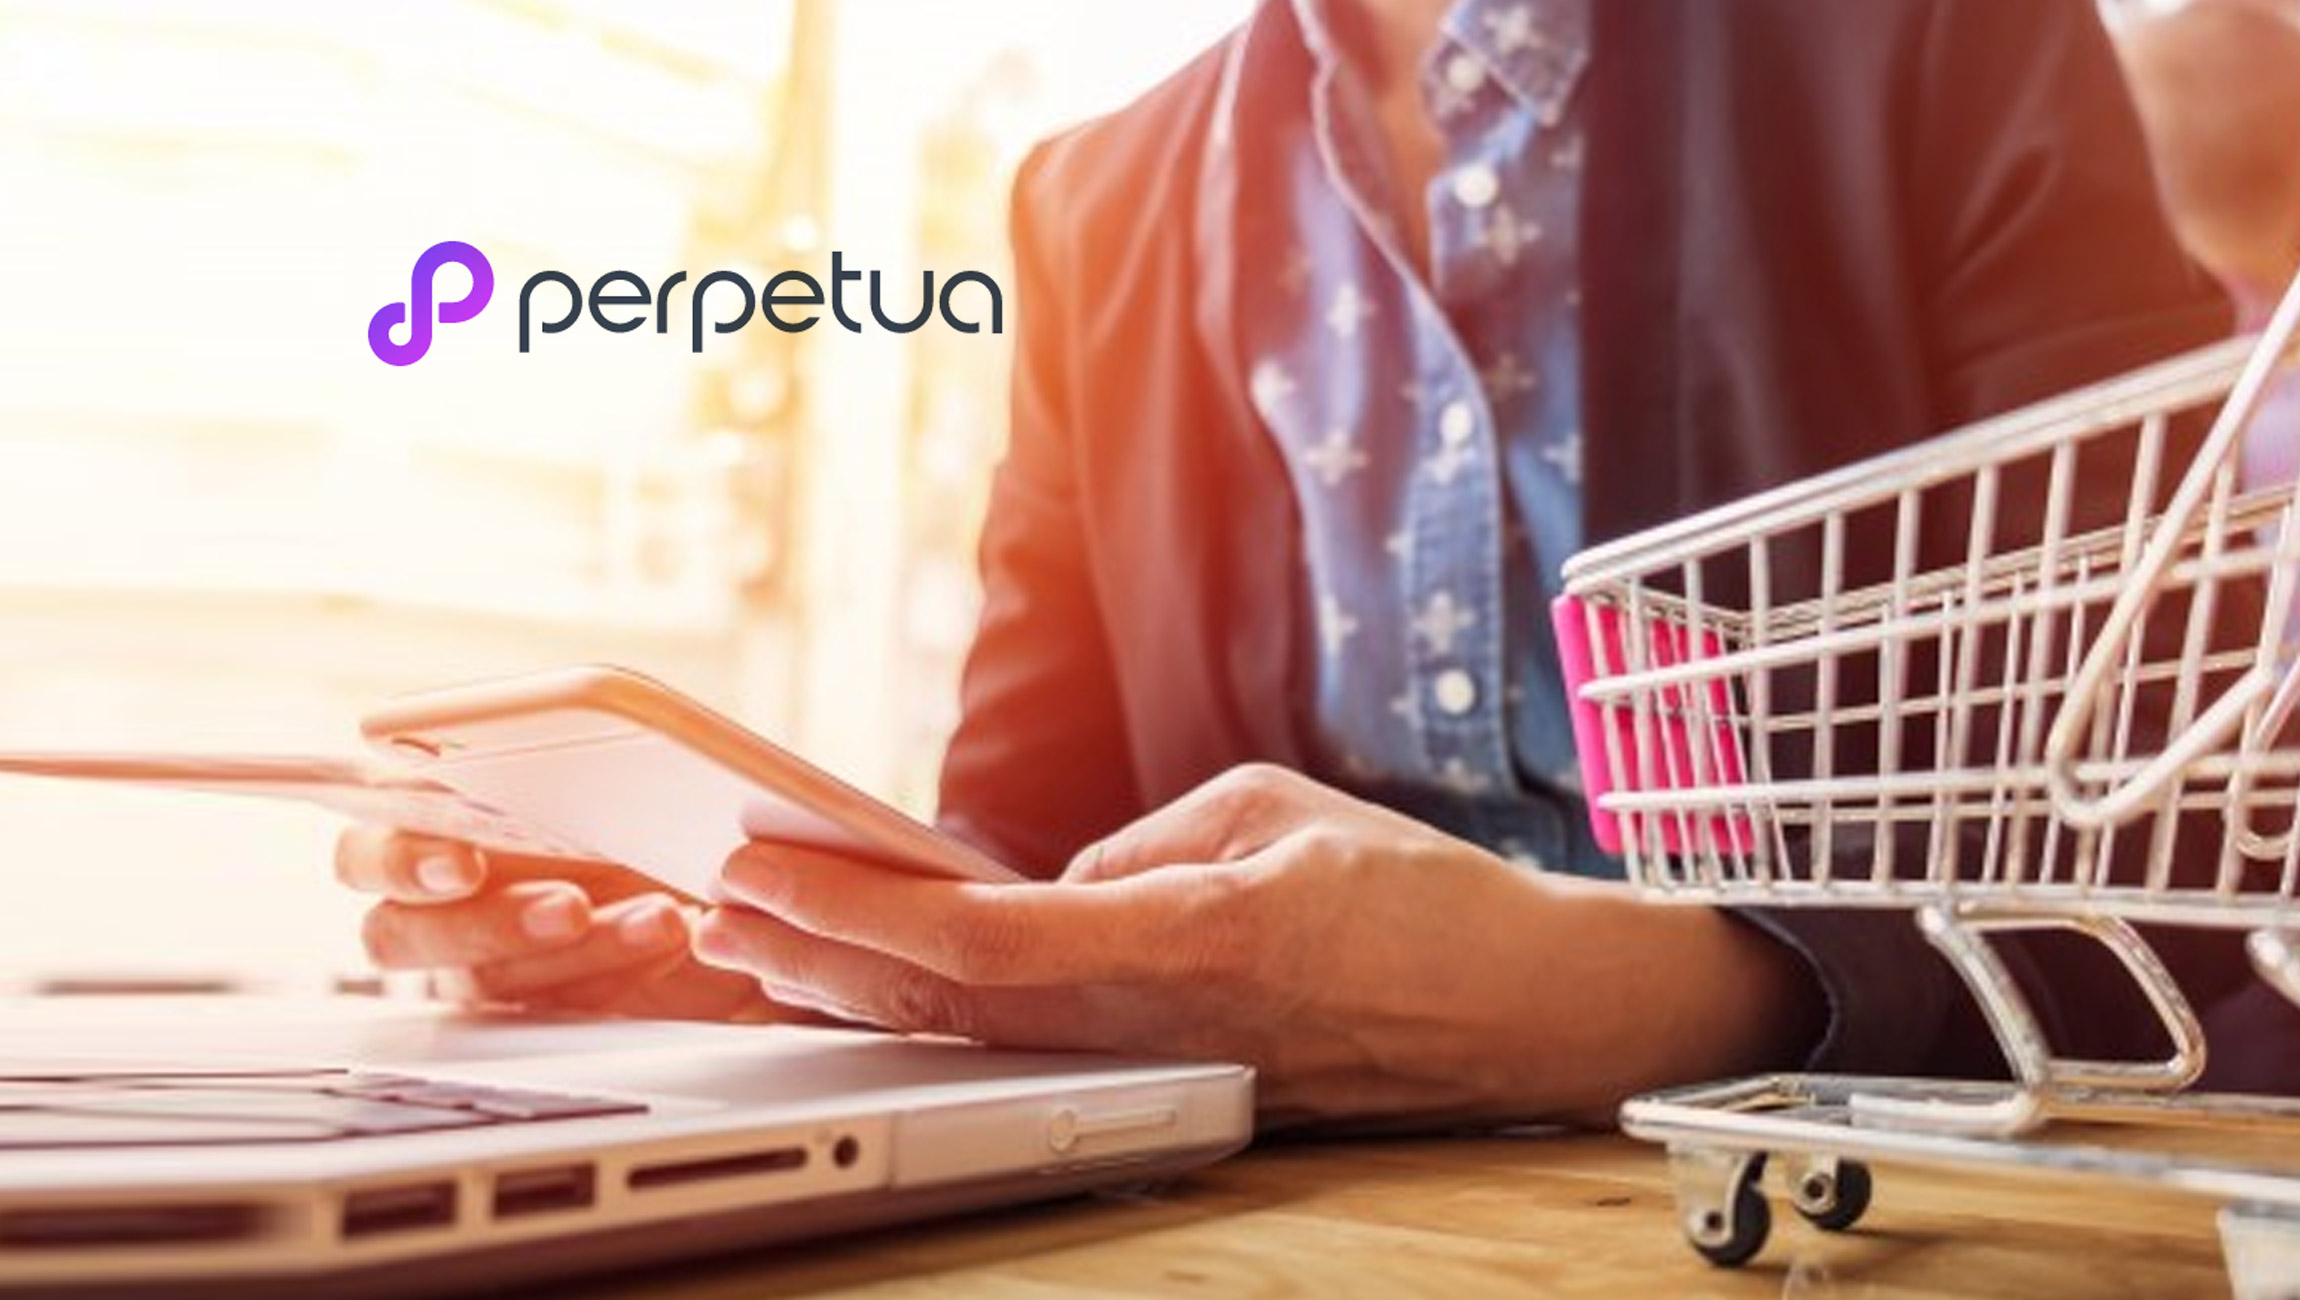 The Perpetua Content Network Unlocks Discoverability and Exposure at Scale For Brands